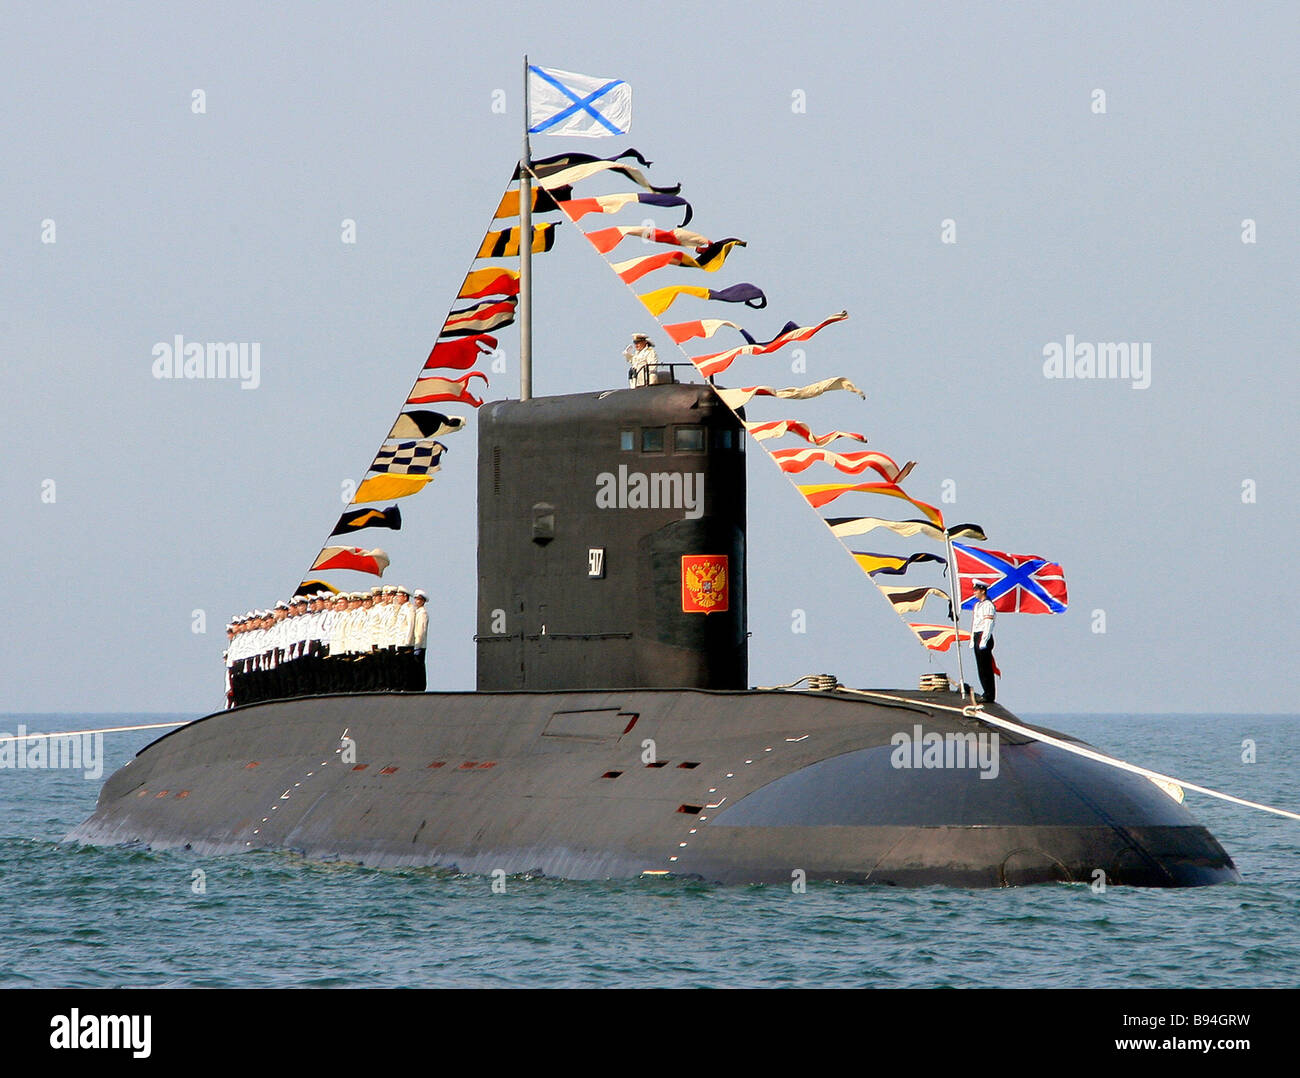 Varshavyanka Kilo class diesel powered submarine during all out rehearsal of Russian Navy Day celebrations - Stock Image